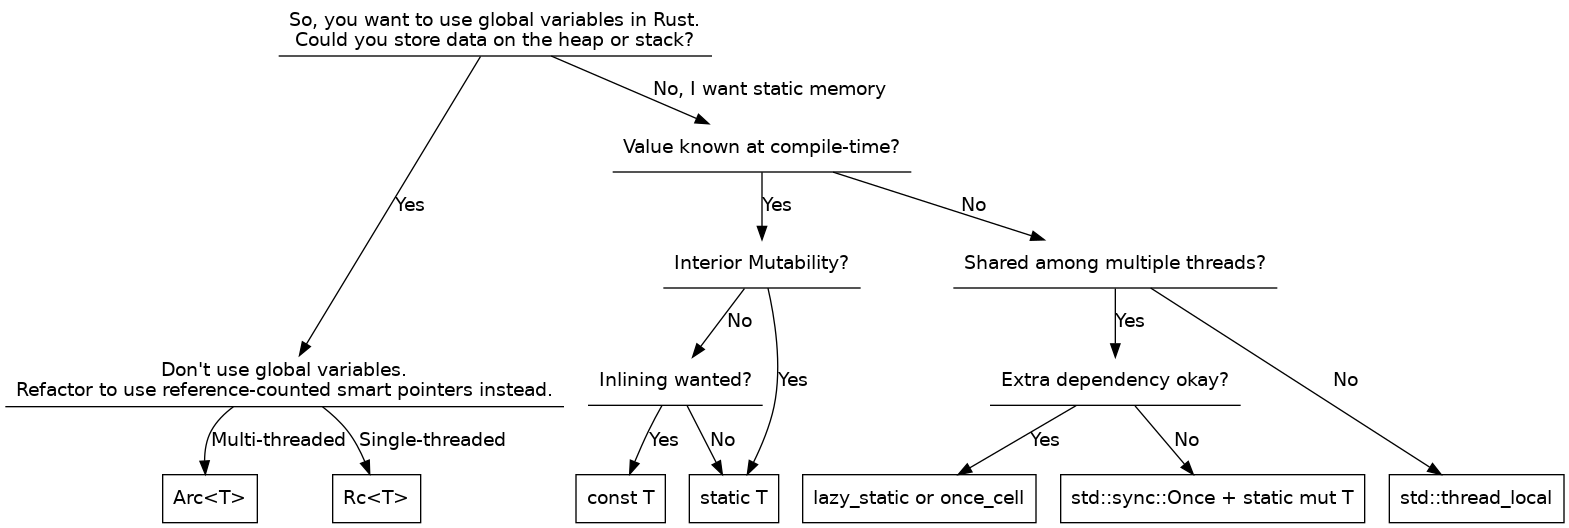 A Flowchart for finding the best solution for global variables